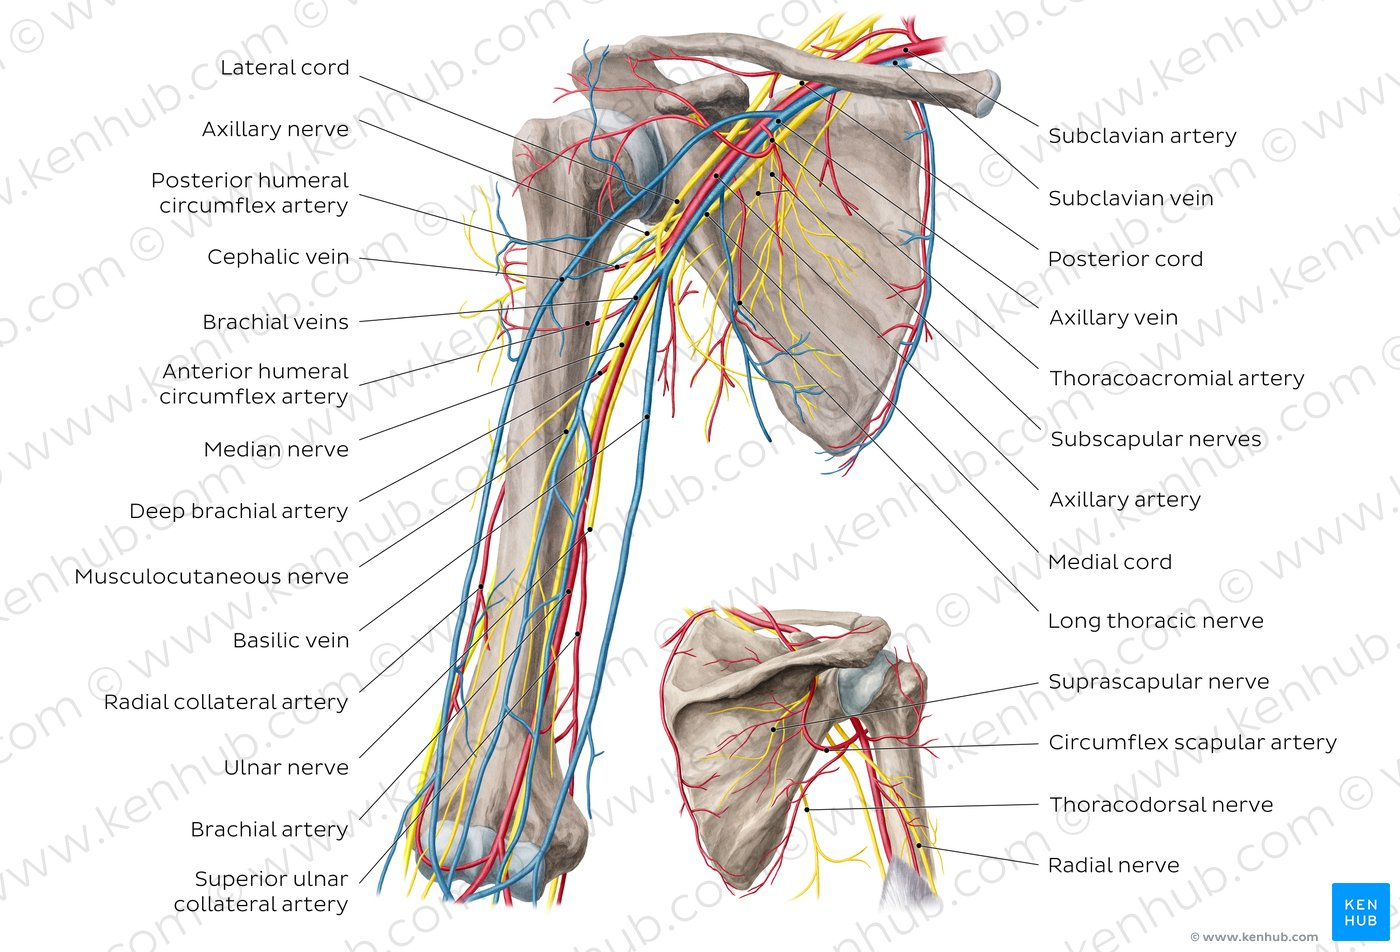 Arteries And Veins Diagram Diagram Pictures Neurovasculature Of The Arm And The Shoulder